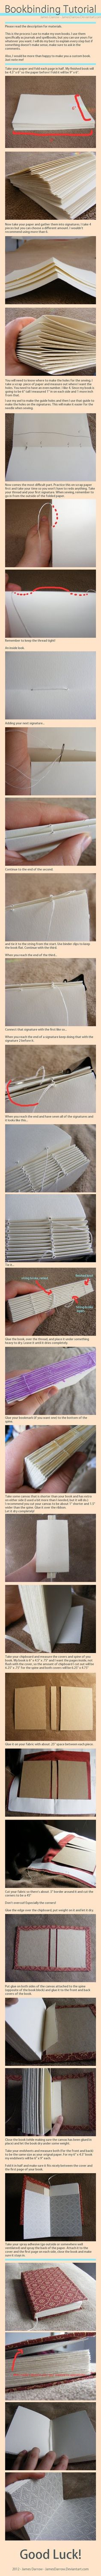 make your own book - Click image to find more Other Pinterest pins  good to know